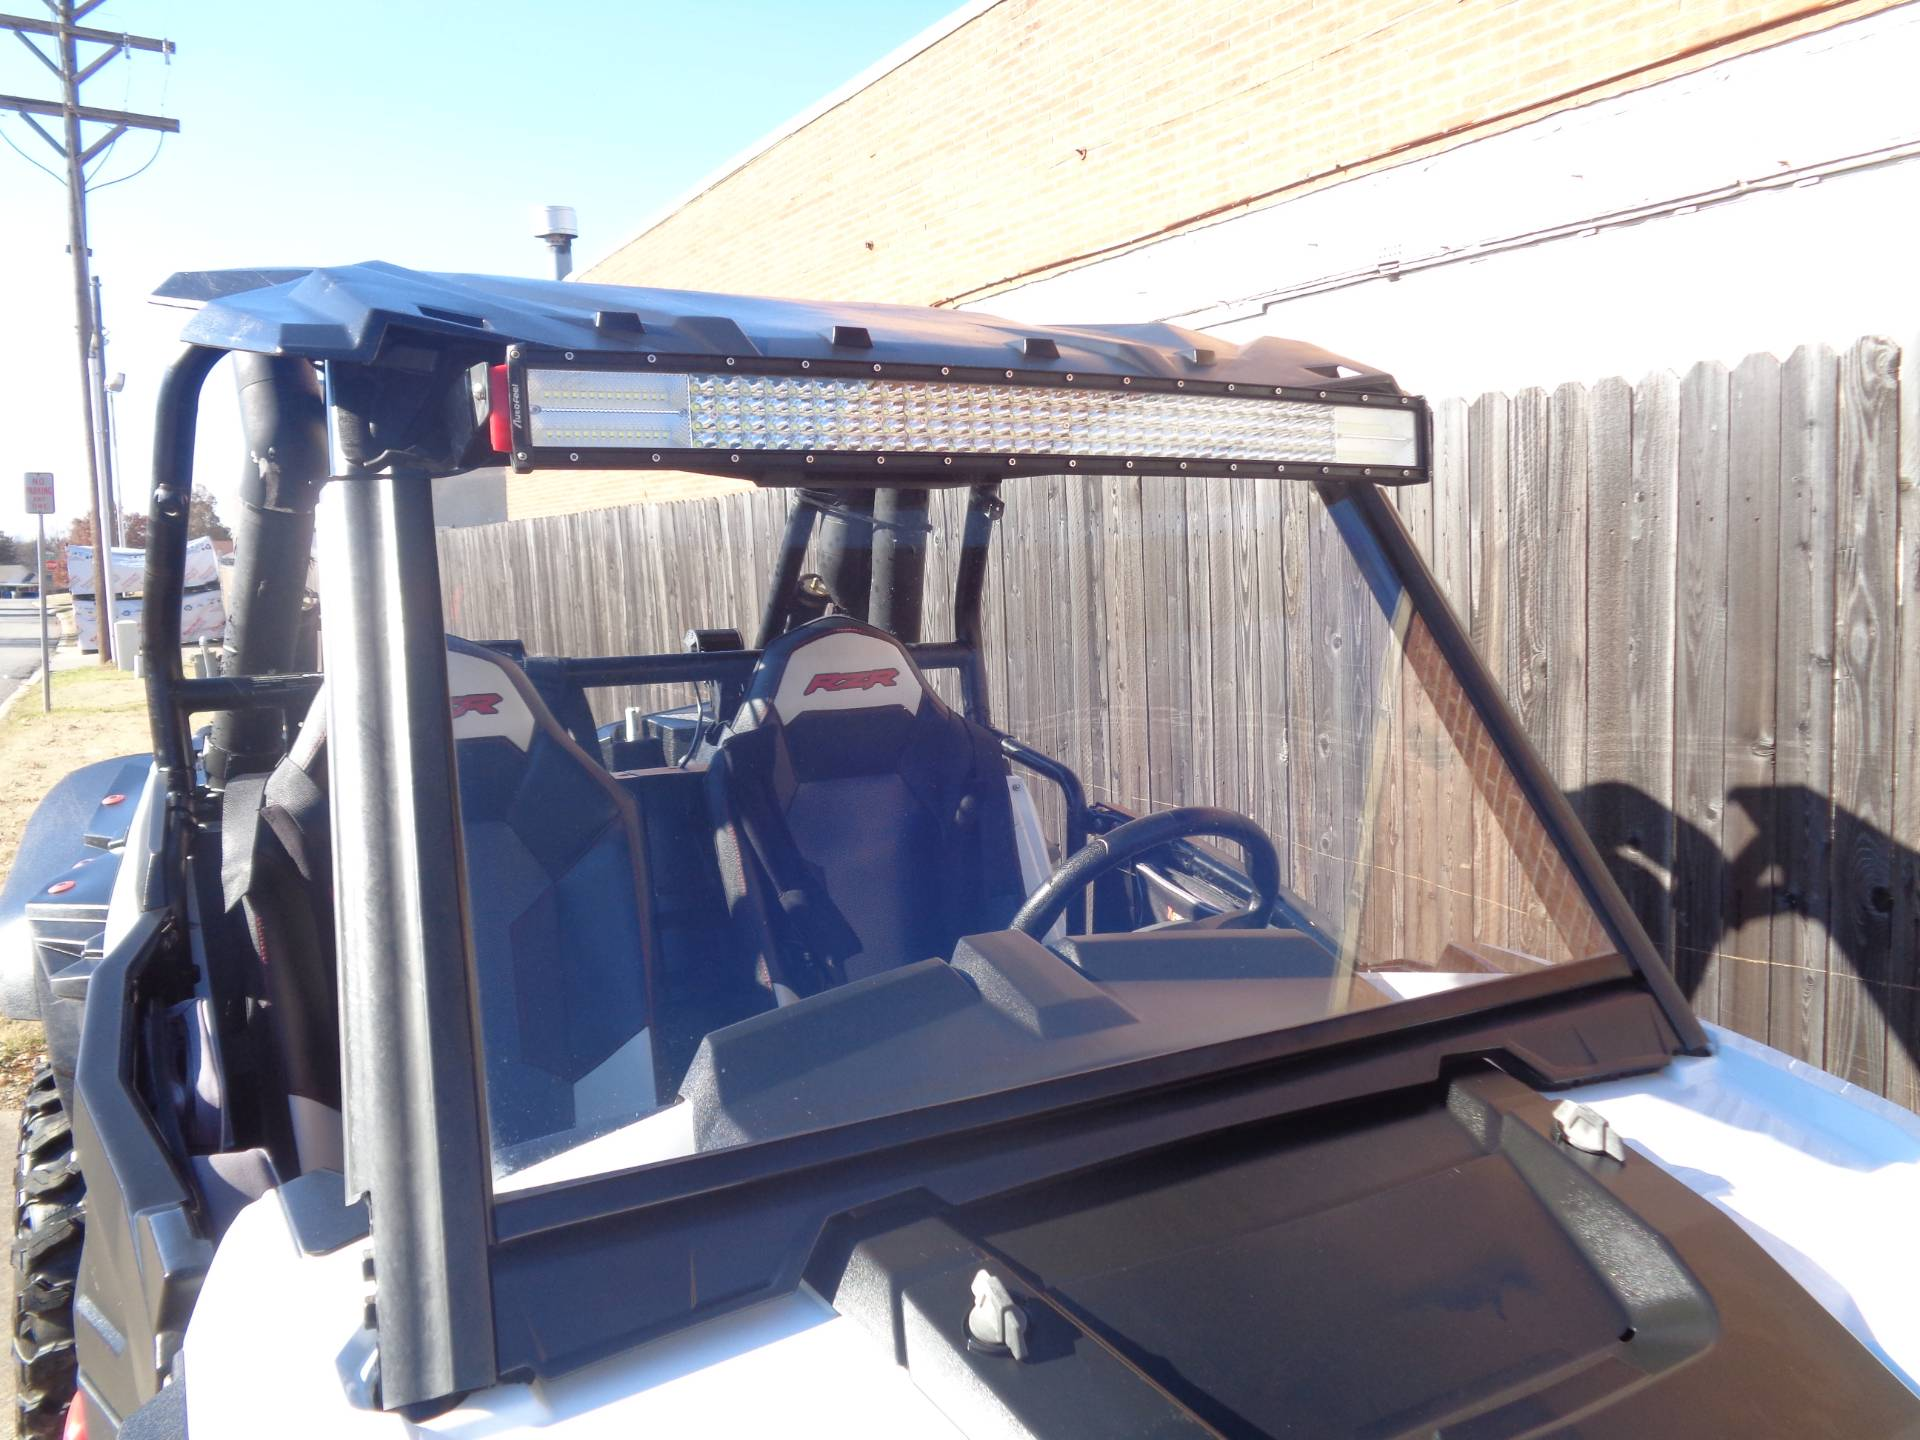 2014 Polaris RZR® XP 1000 EPS in Tulsa, Oklahoma